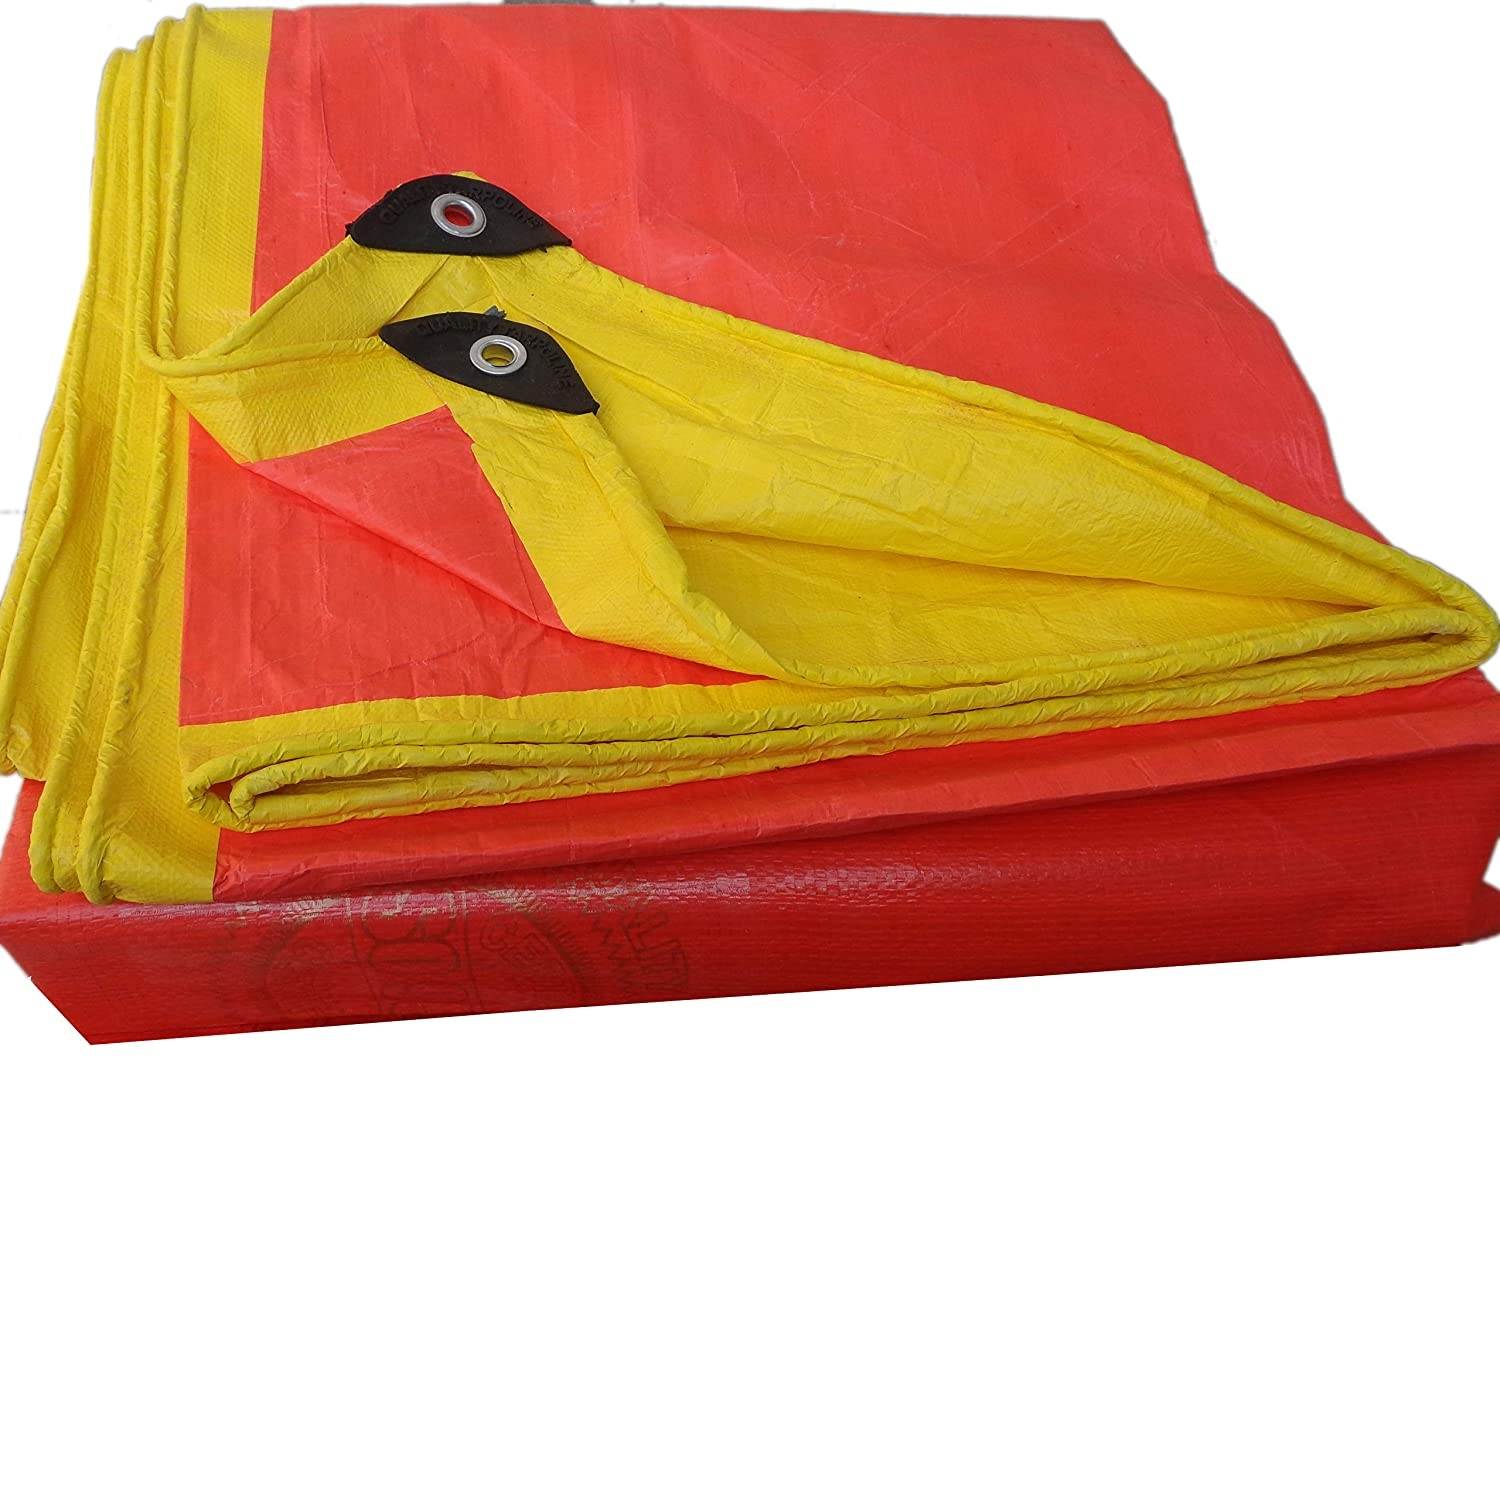 KARSYN Tarpaulin Waterproof Plastic Trap - Red/Yellow Tripal - for All Weather Camping Tent - 12X8 Ft.